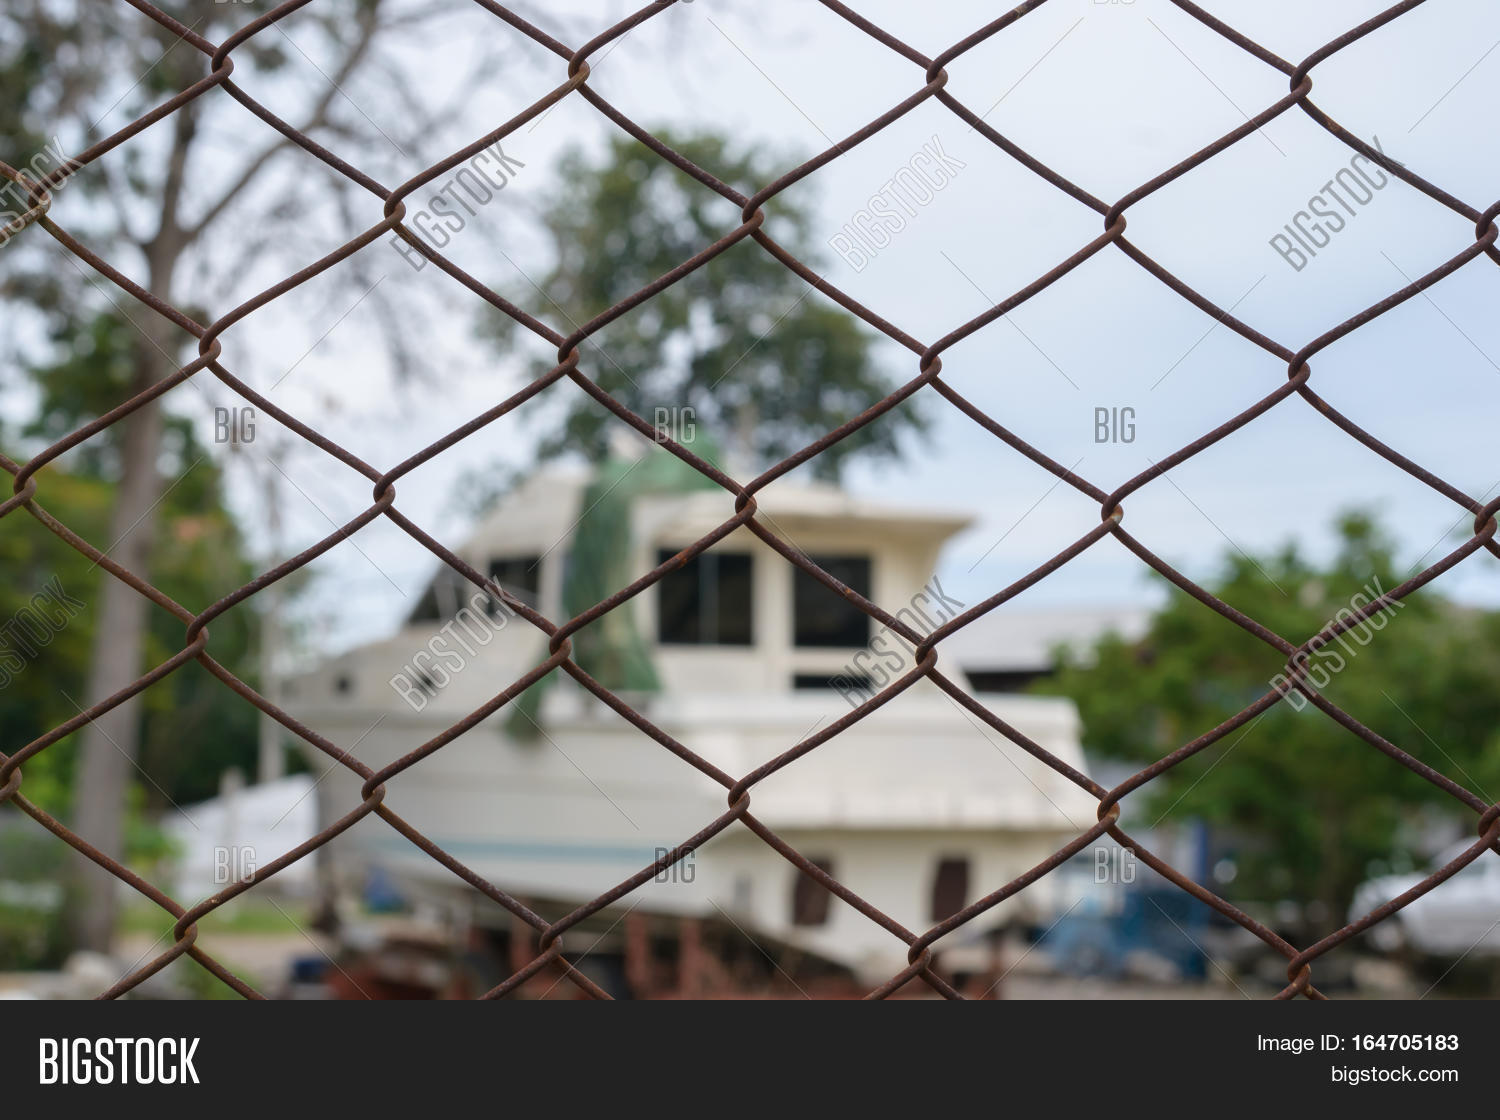 Steel Wire Mesh Fence Image & Photo (Free Trial) | Bigstock